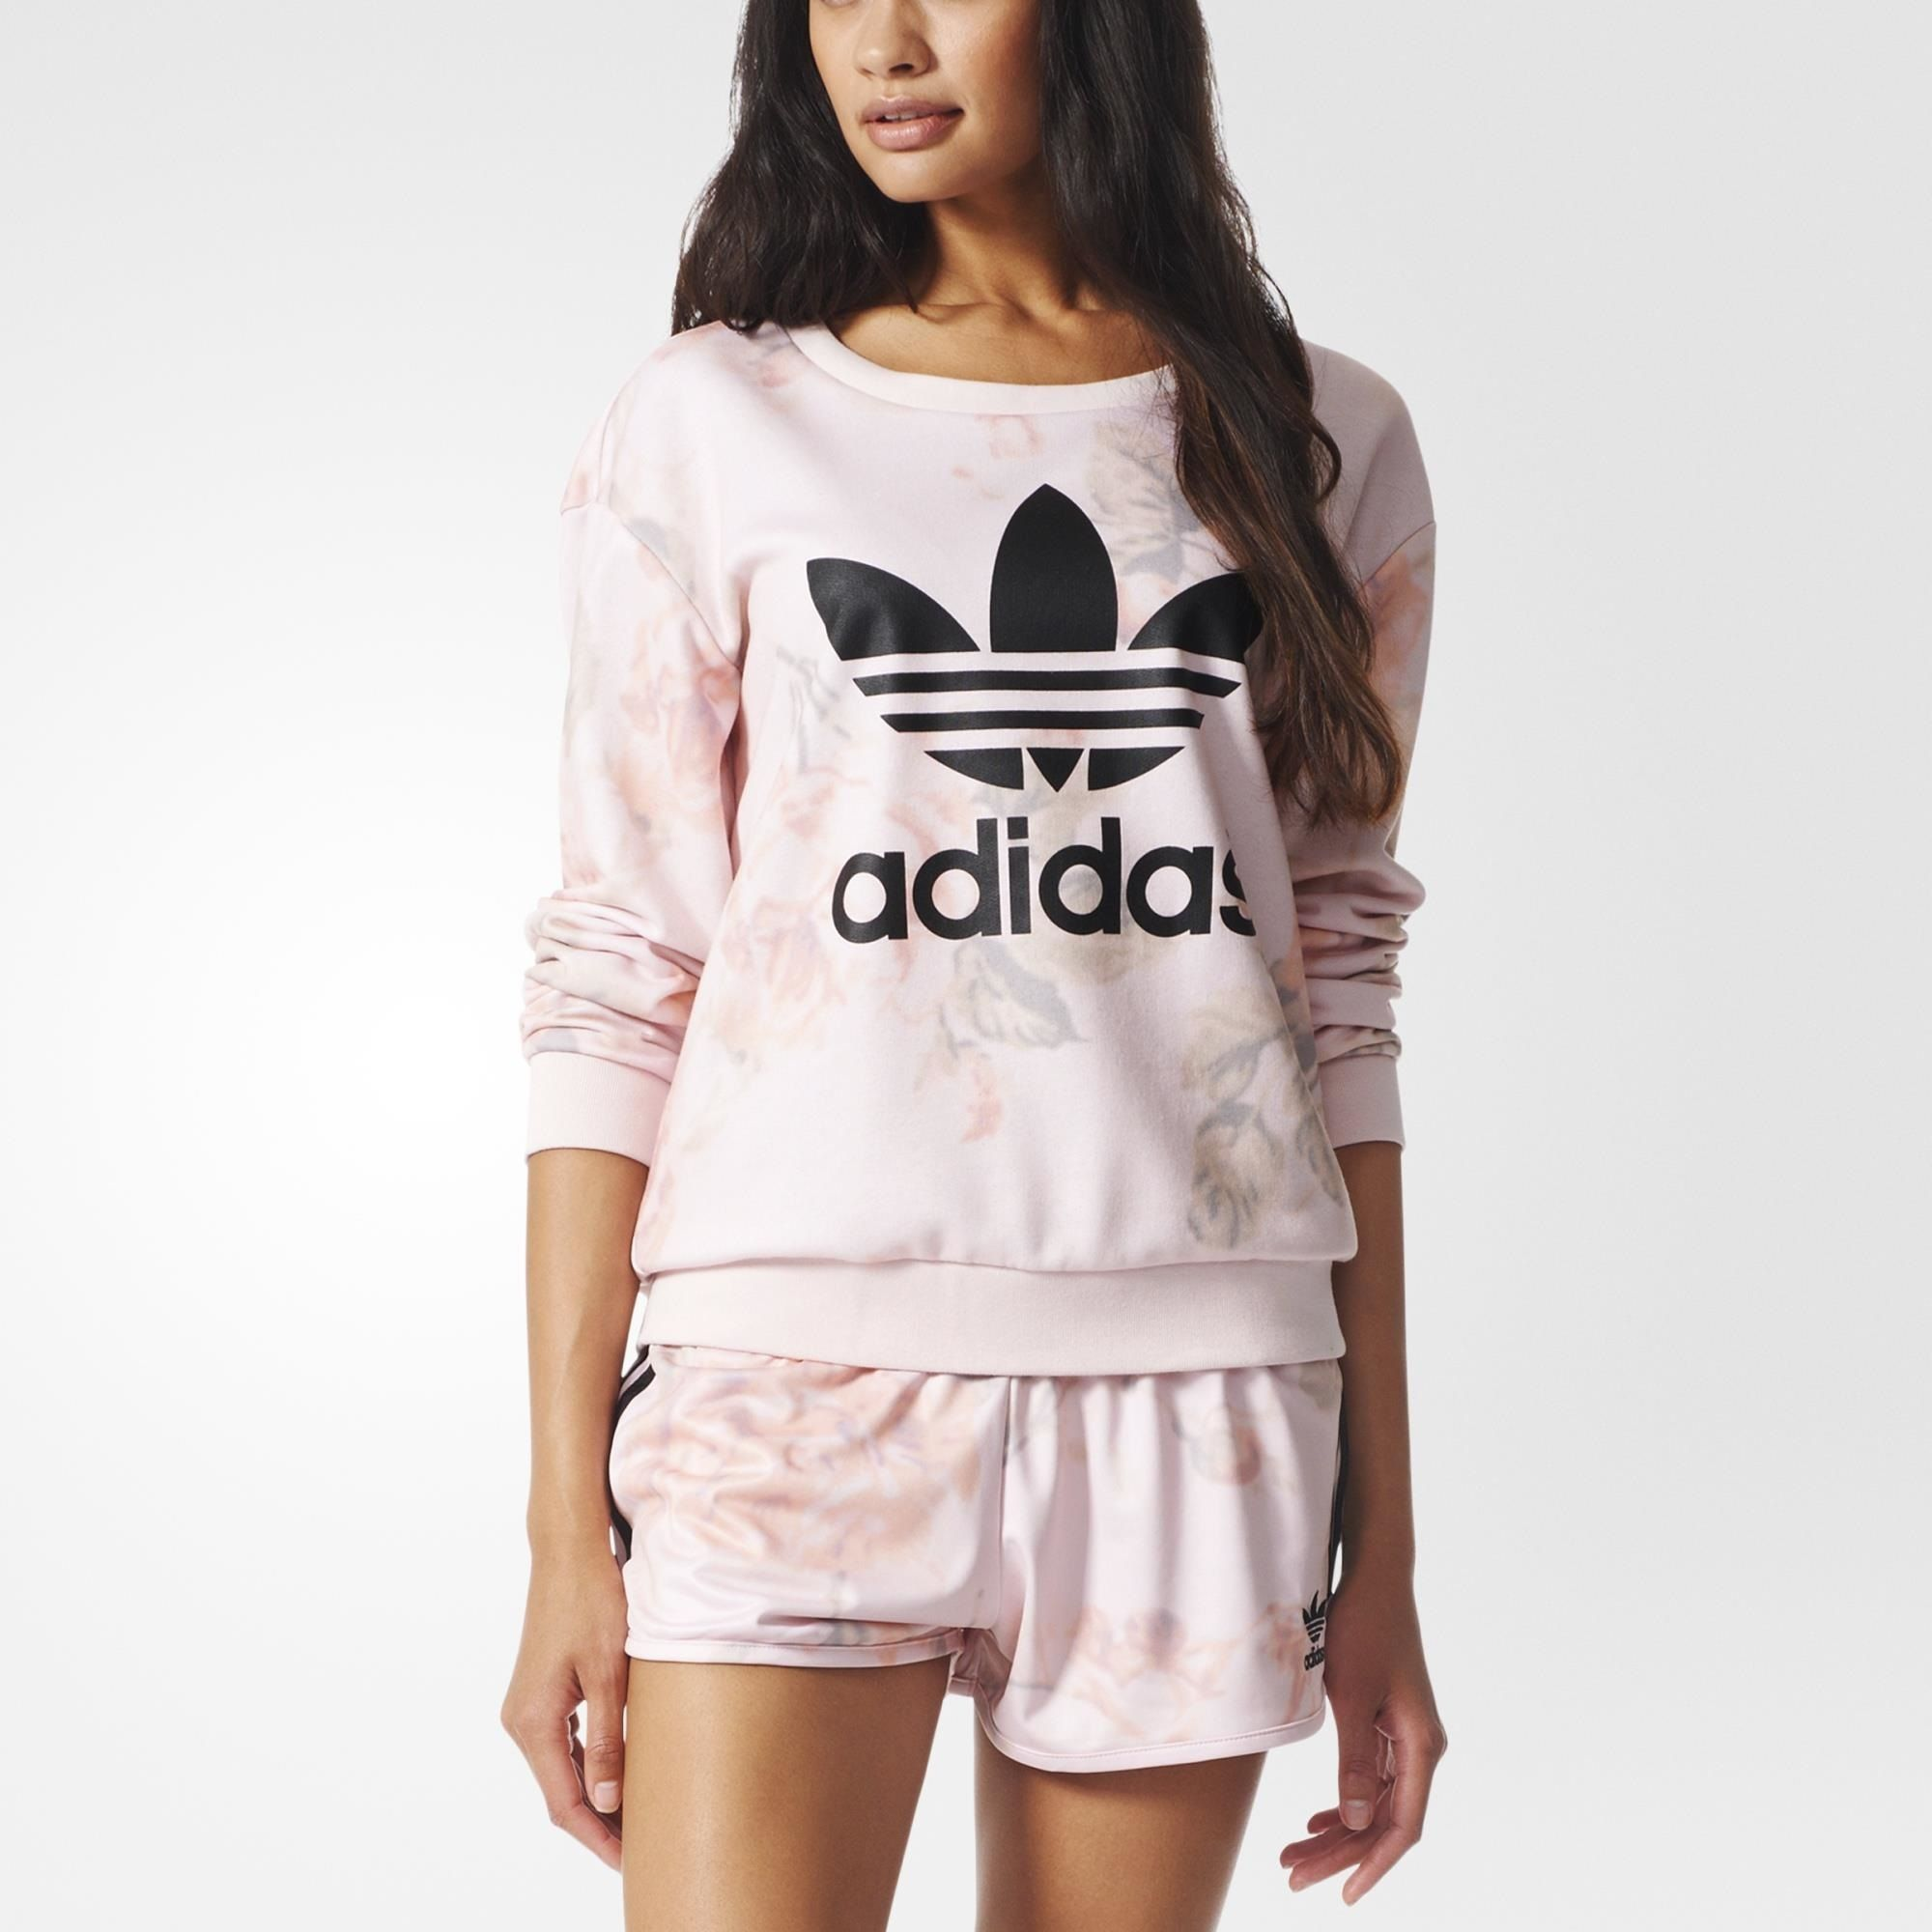 adidas Originals picks a garden of pretty-in-pink style to add to this 61140cb052fb0